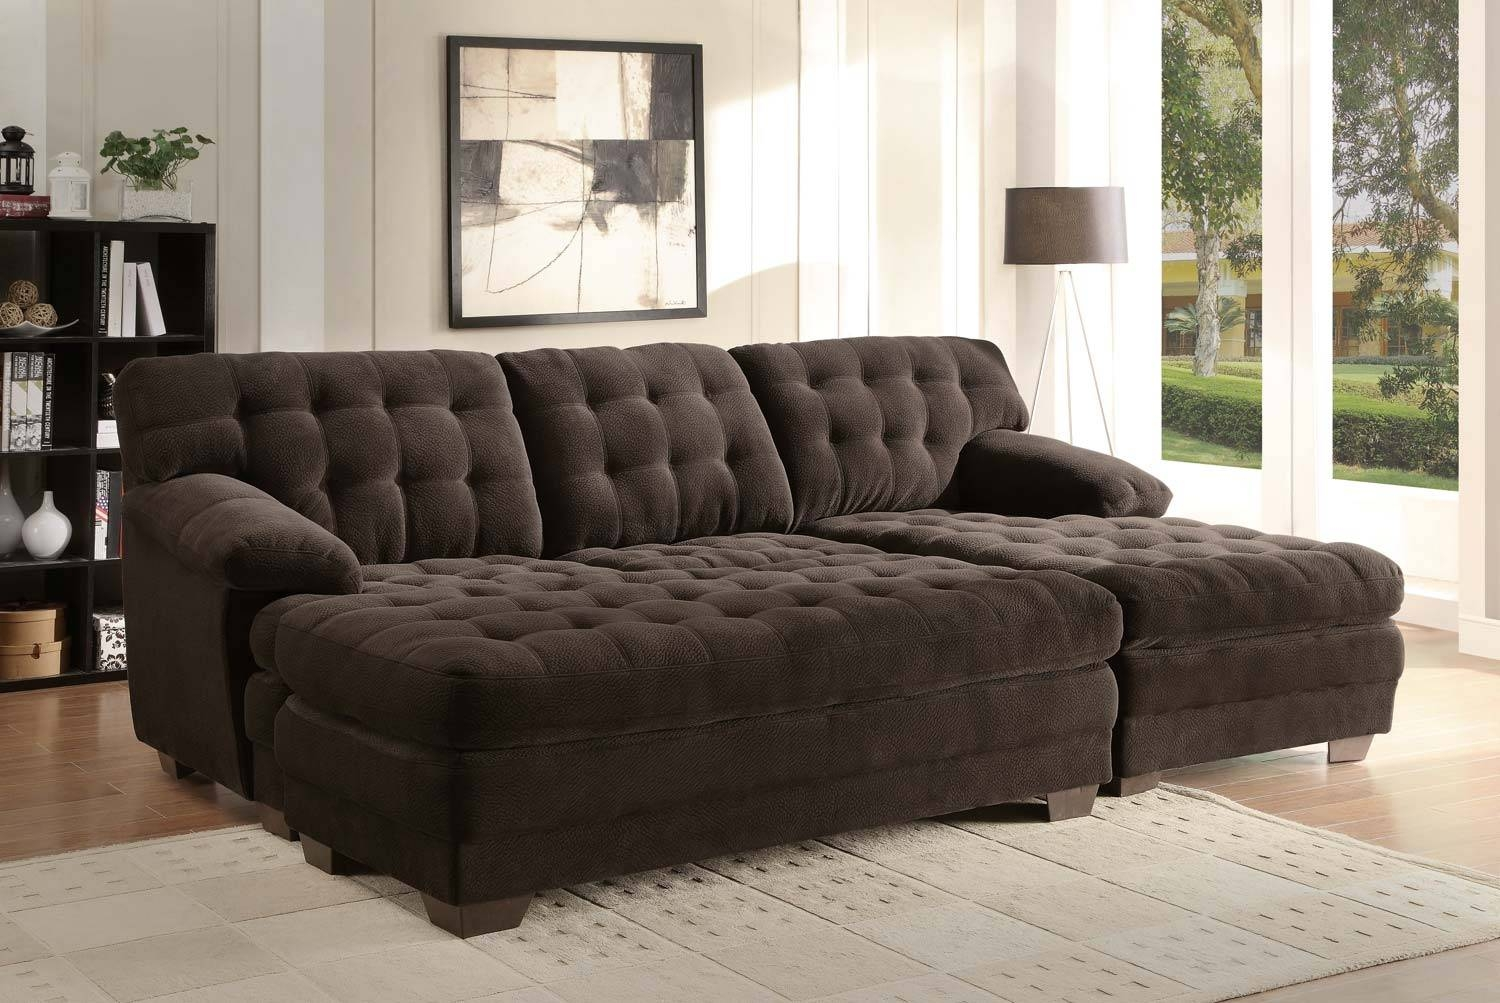 Sectional Sofa Couch Reversible Chaise Micro Suede Chocolate Regarding Sectional Sofa With Large Ottoman (Photo 13 of 30)